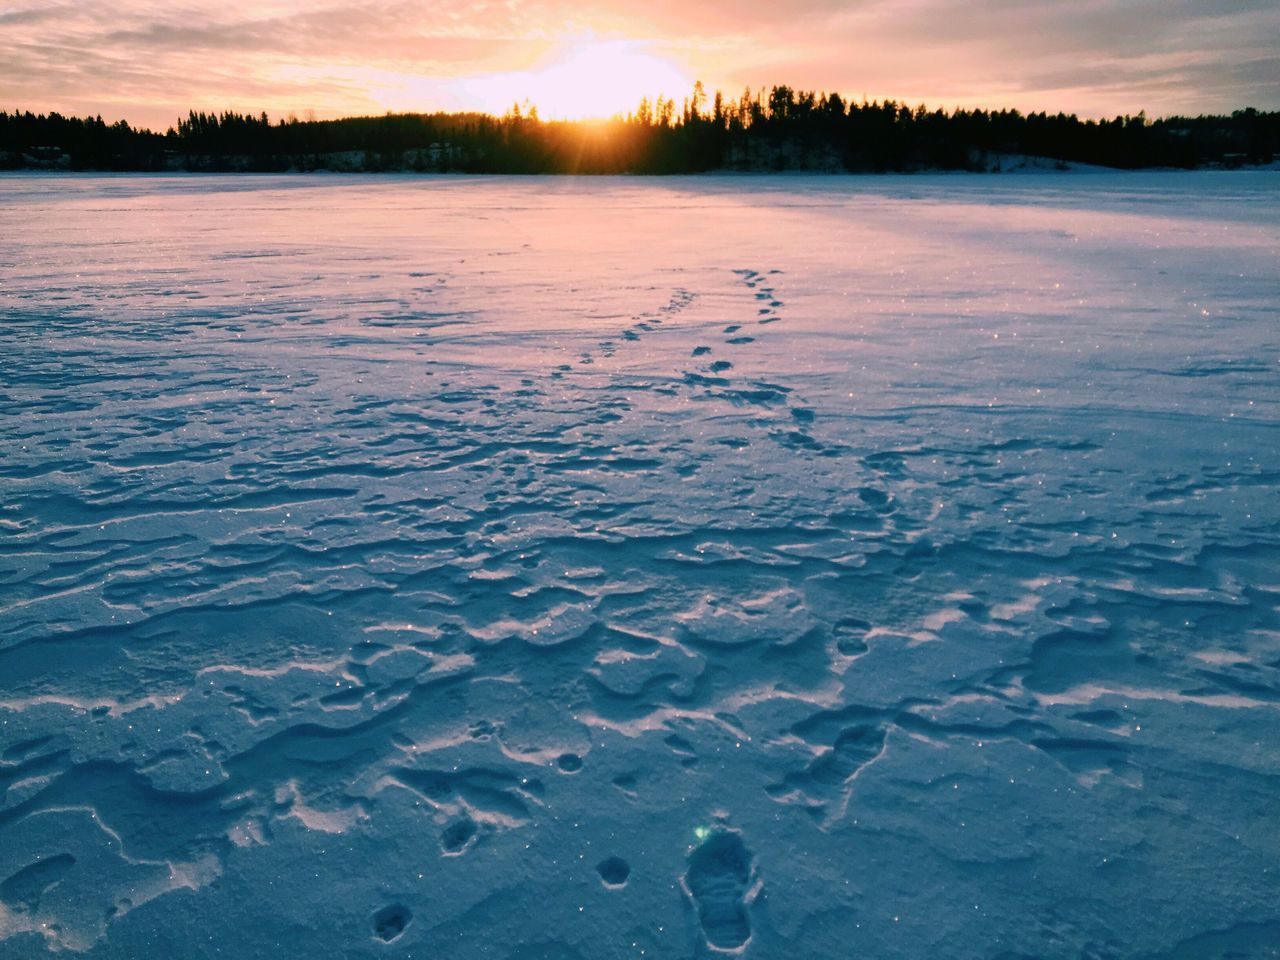 Footsteps in the snow Sunset Nature Beauty In Nature Scenics Cold Temperature Tranquil Scene Winter Tranquility Sky Frozen Landscape Outdoors No People Ice Cloud - Sky Dramatic Sky Lake Snow Day Water Frozen Lake Nature Photography Winter Wonderland Winter Sunset December